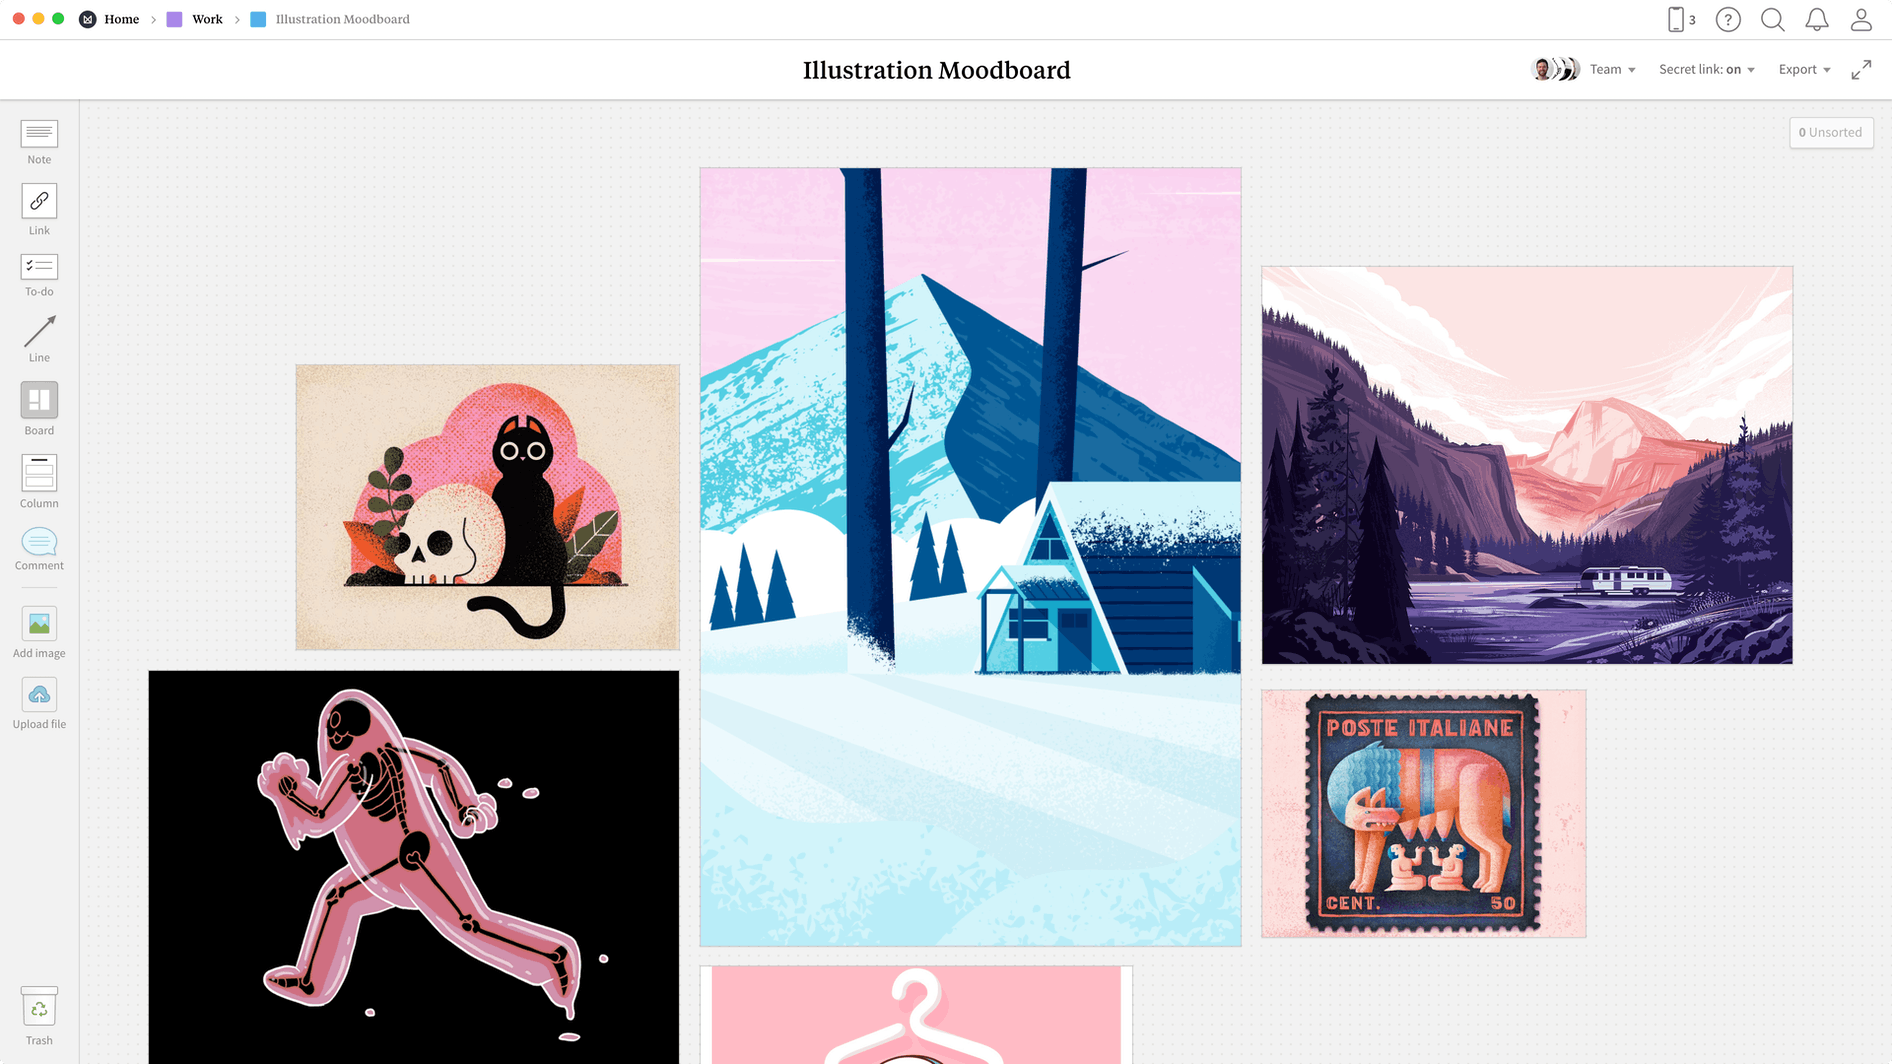 Illustrative Moodboard Template, within the Milanote app